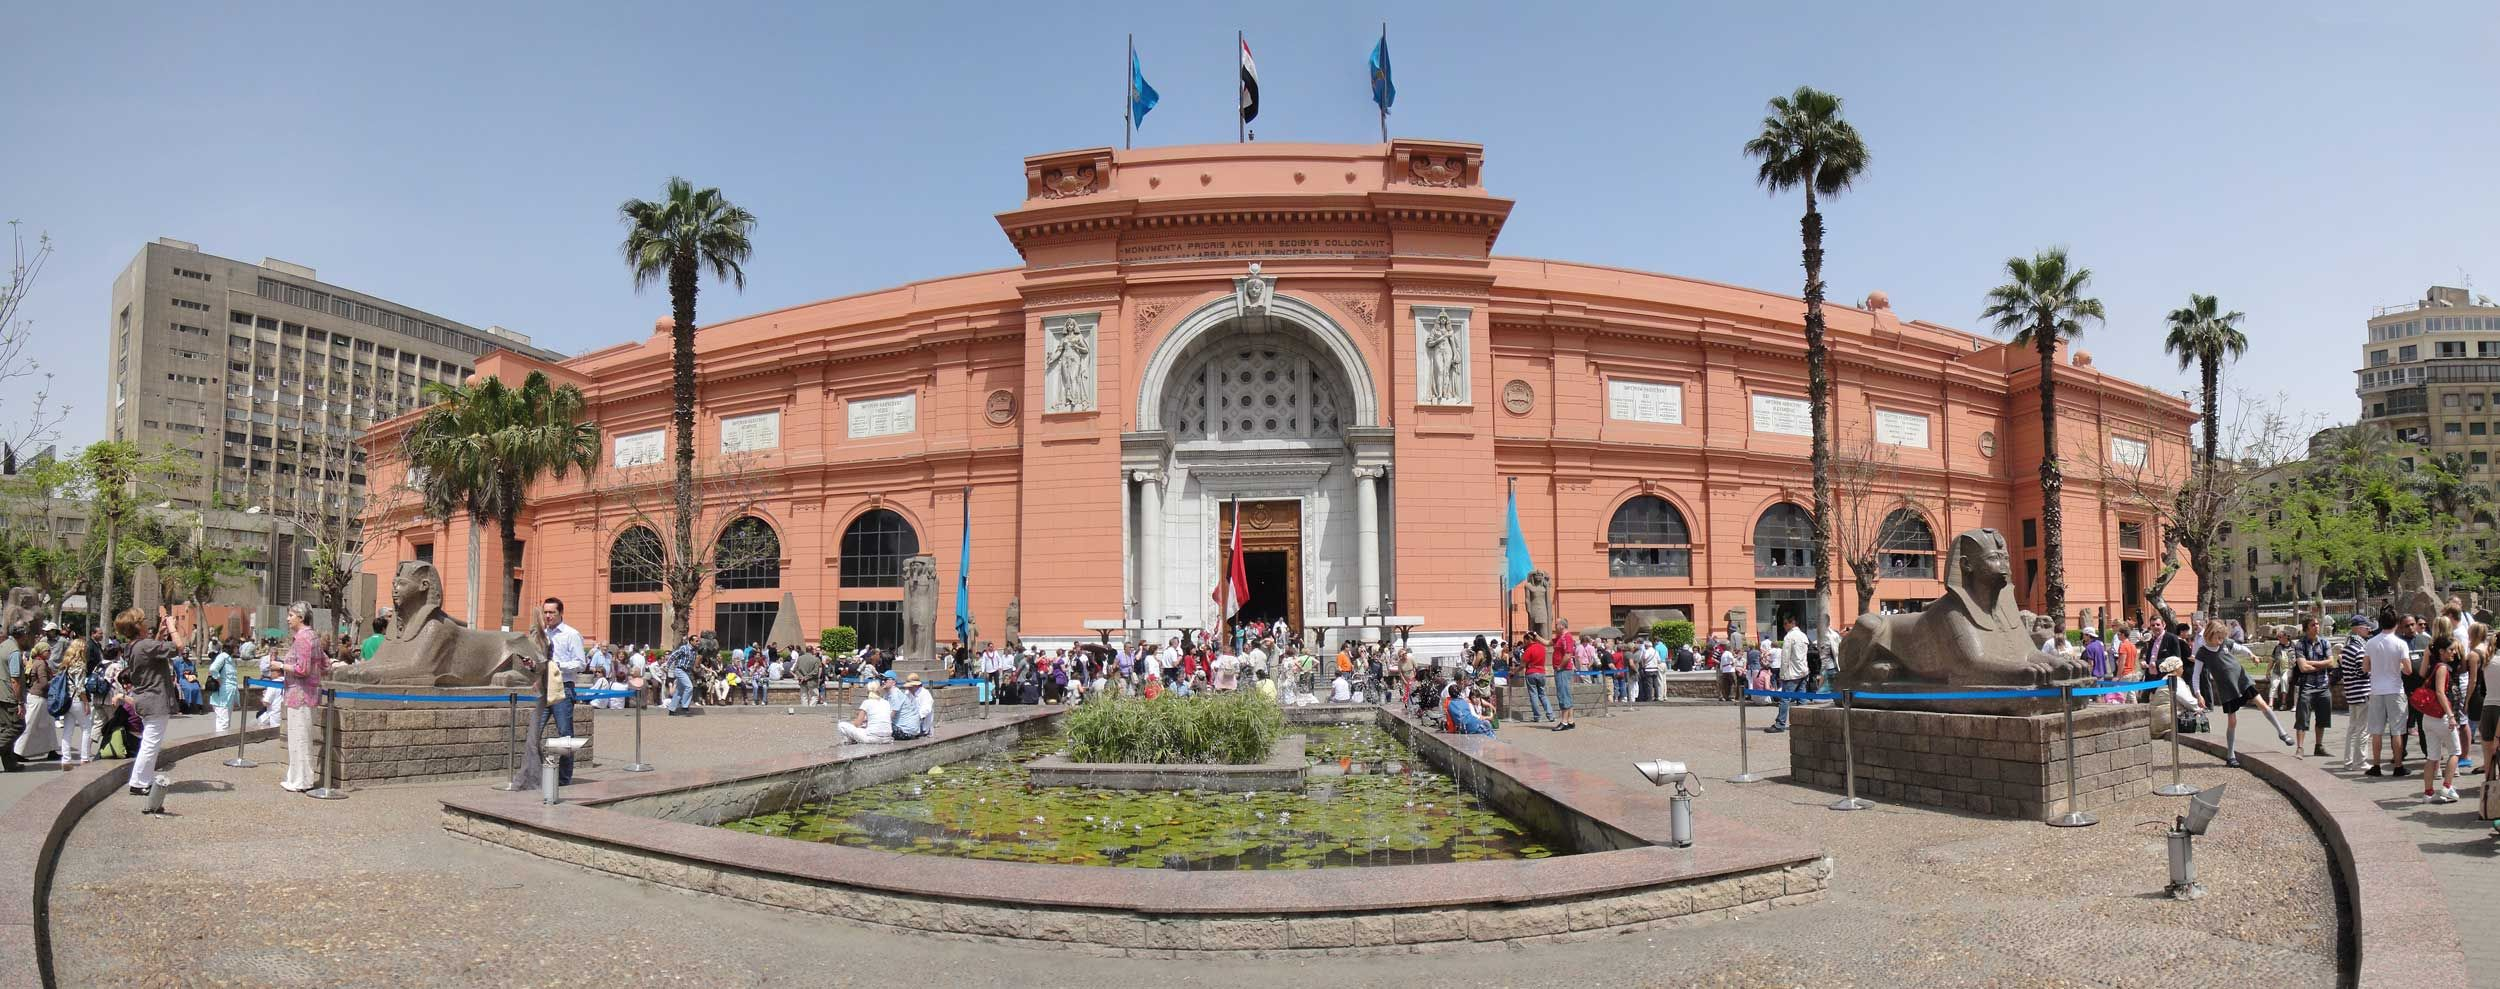 The Museum of Egyptian Antiquities (Egyptian Museum, Museum of Cairo),  Cairo, EGYPT   Photography by Faye & Steve   The Egyptia…   Cairo, Museum  tours, Cairo museum